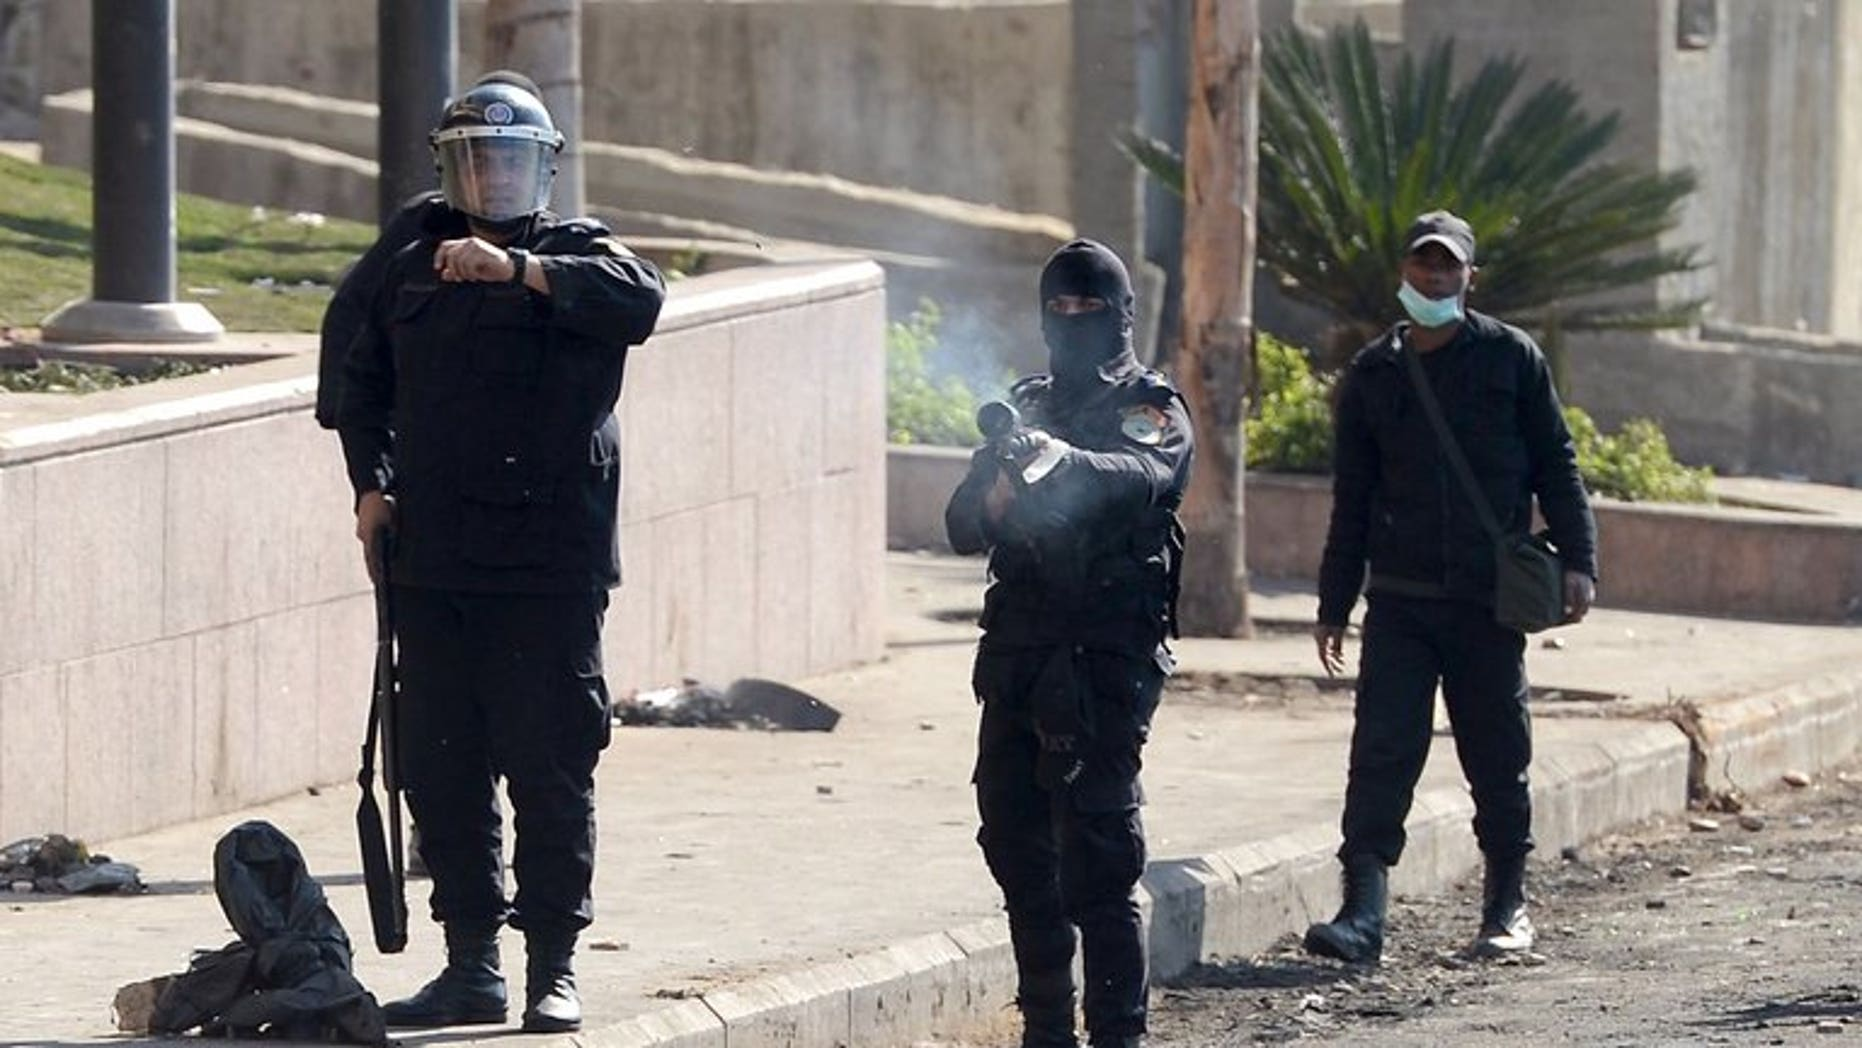 Egyptian riot police fires a tear gas canister towards protesters on January 29, 2013. Unidentified gunmen killed two Egyptian policemen guarding a government building in the northern Sinai town of Al-Arish, a security official told AFP.